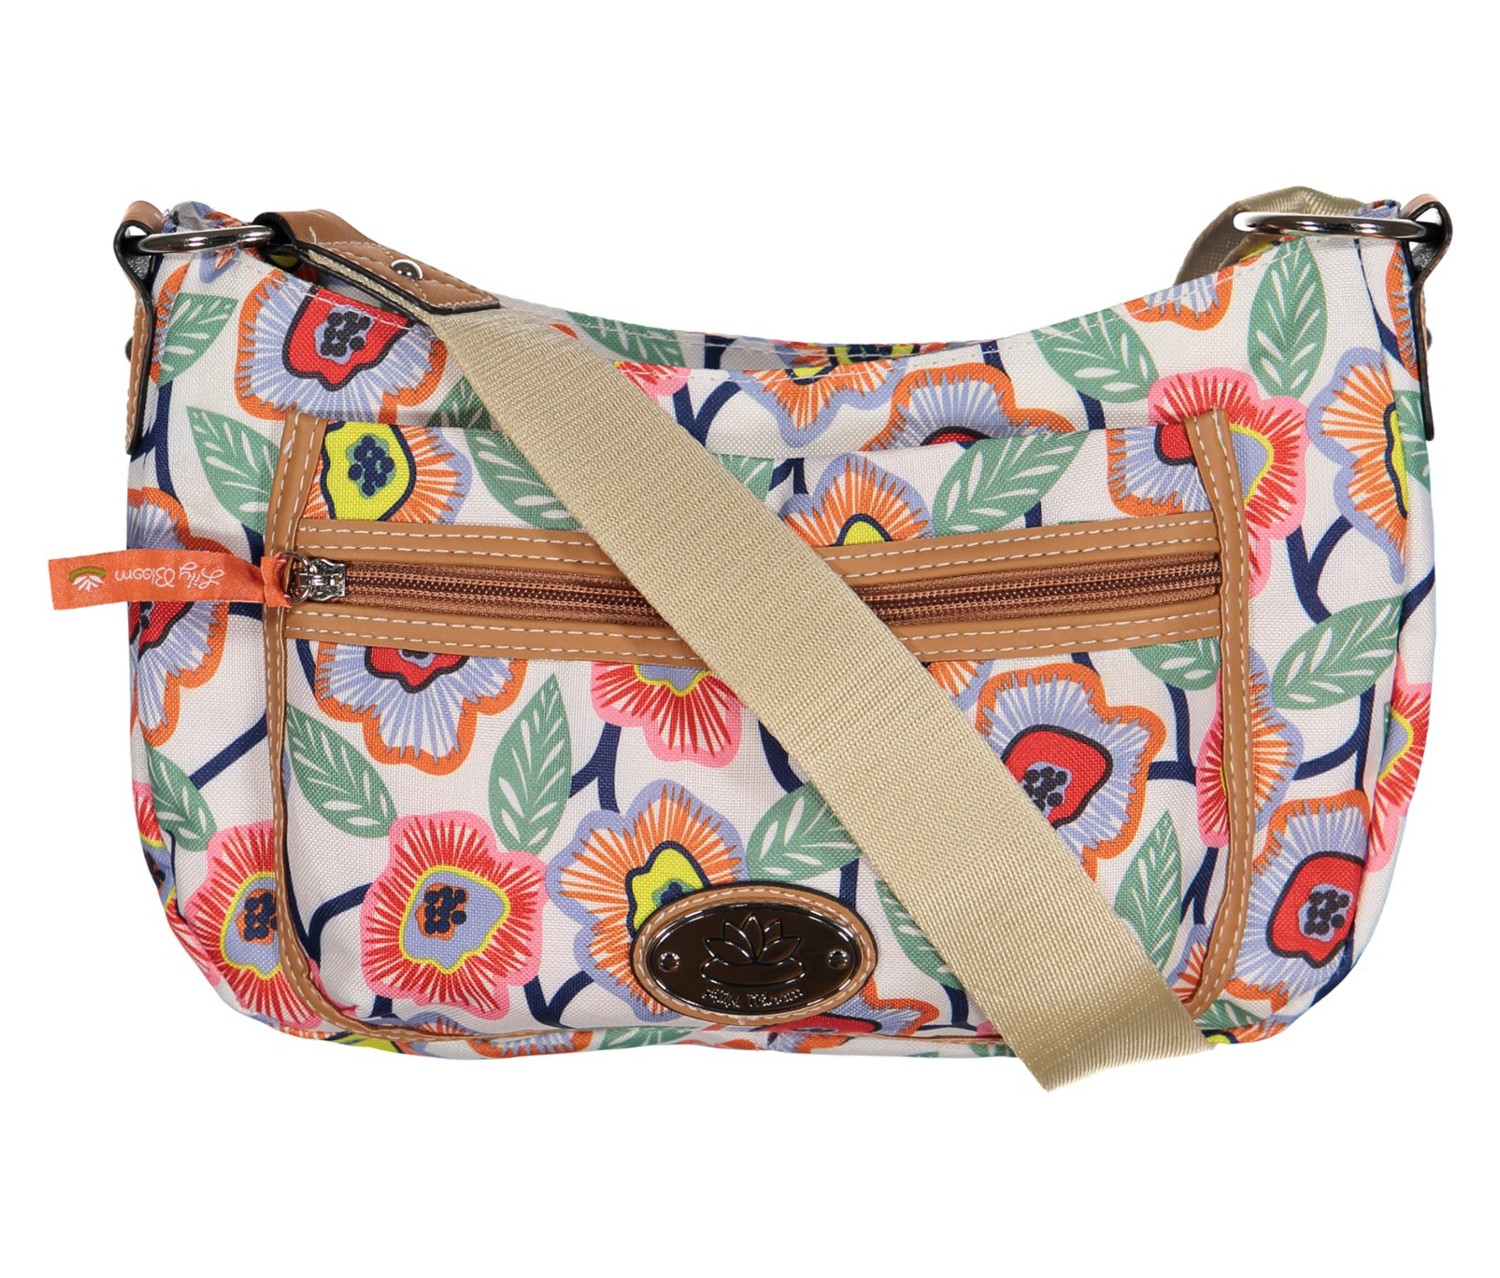 Pink Lining RB Hobo Tasche